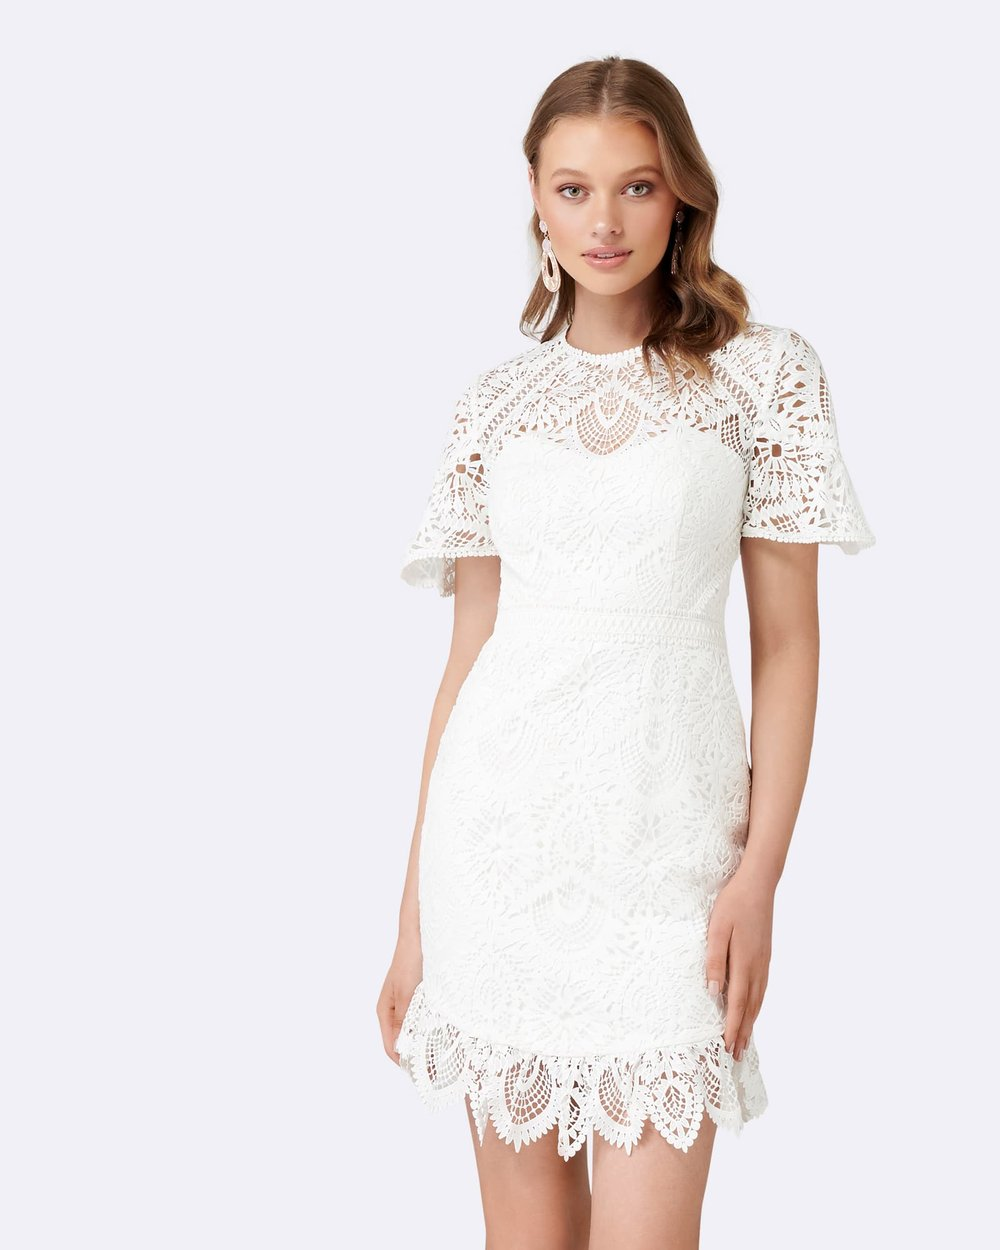 73467dced6c Austin Fit and Flare Lace Dress by Forever New Online